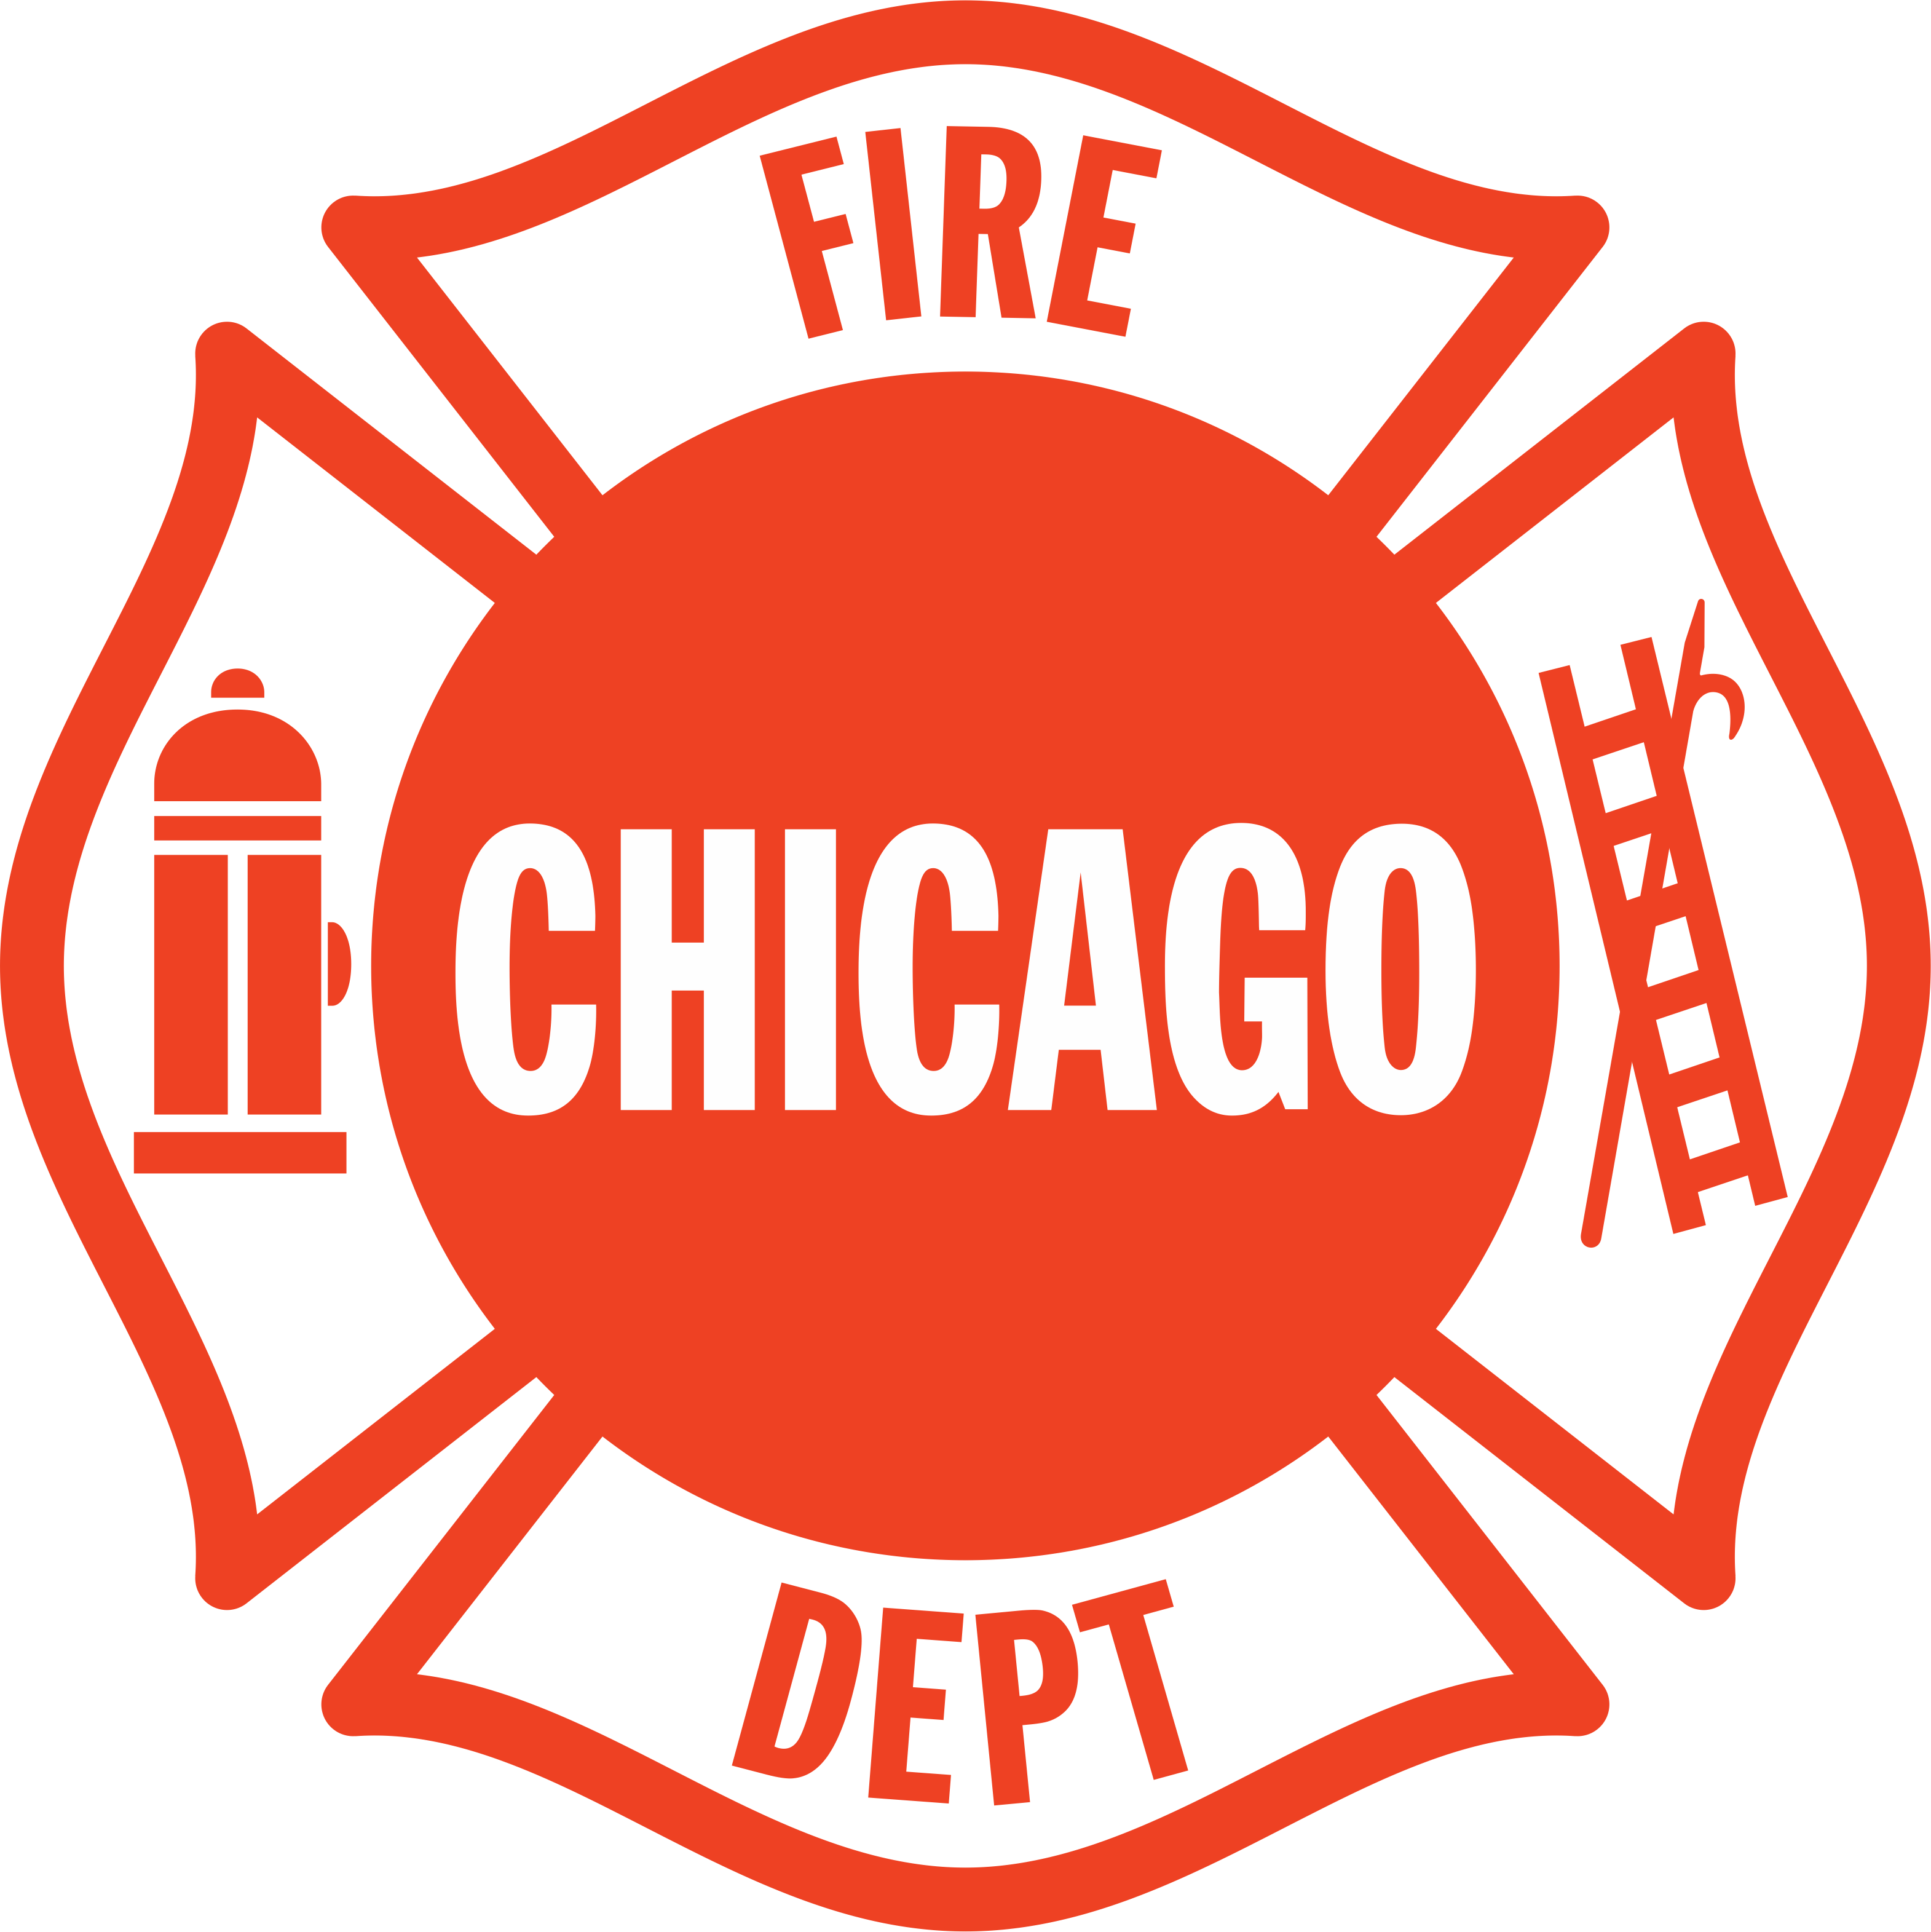 Chicago Fire Dept Stickers By Thelosthosecompany Design By Humans Chicago Fire Chicago Fire Department Fire Dept Logo